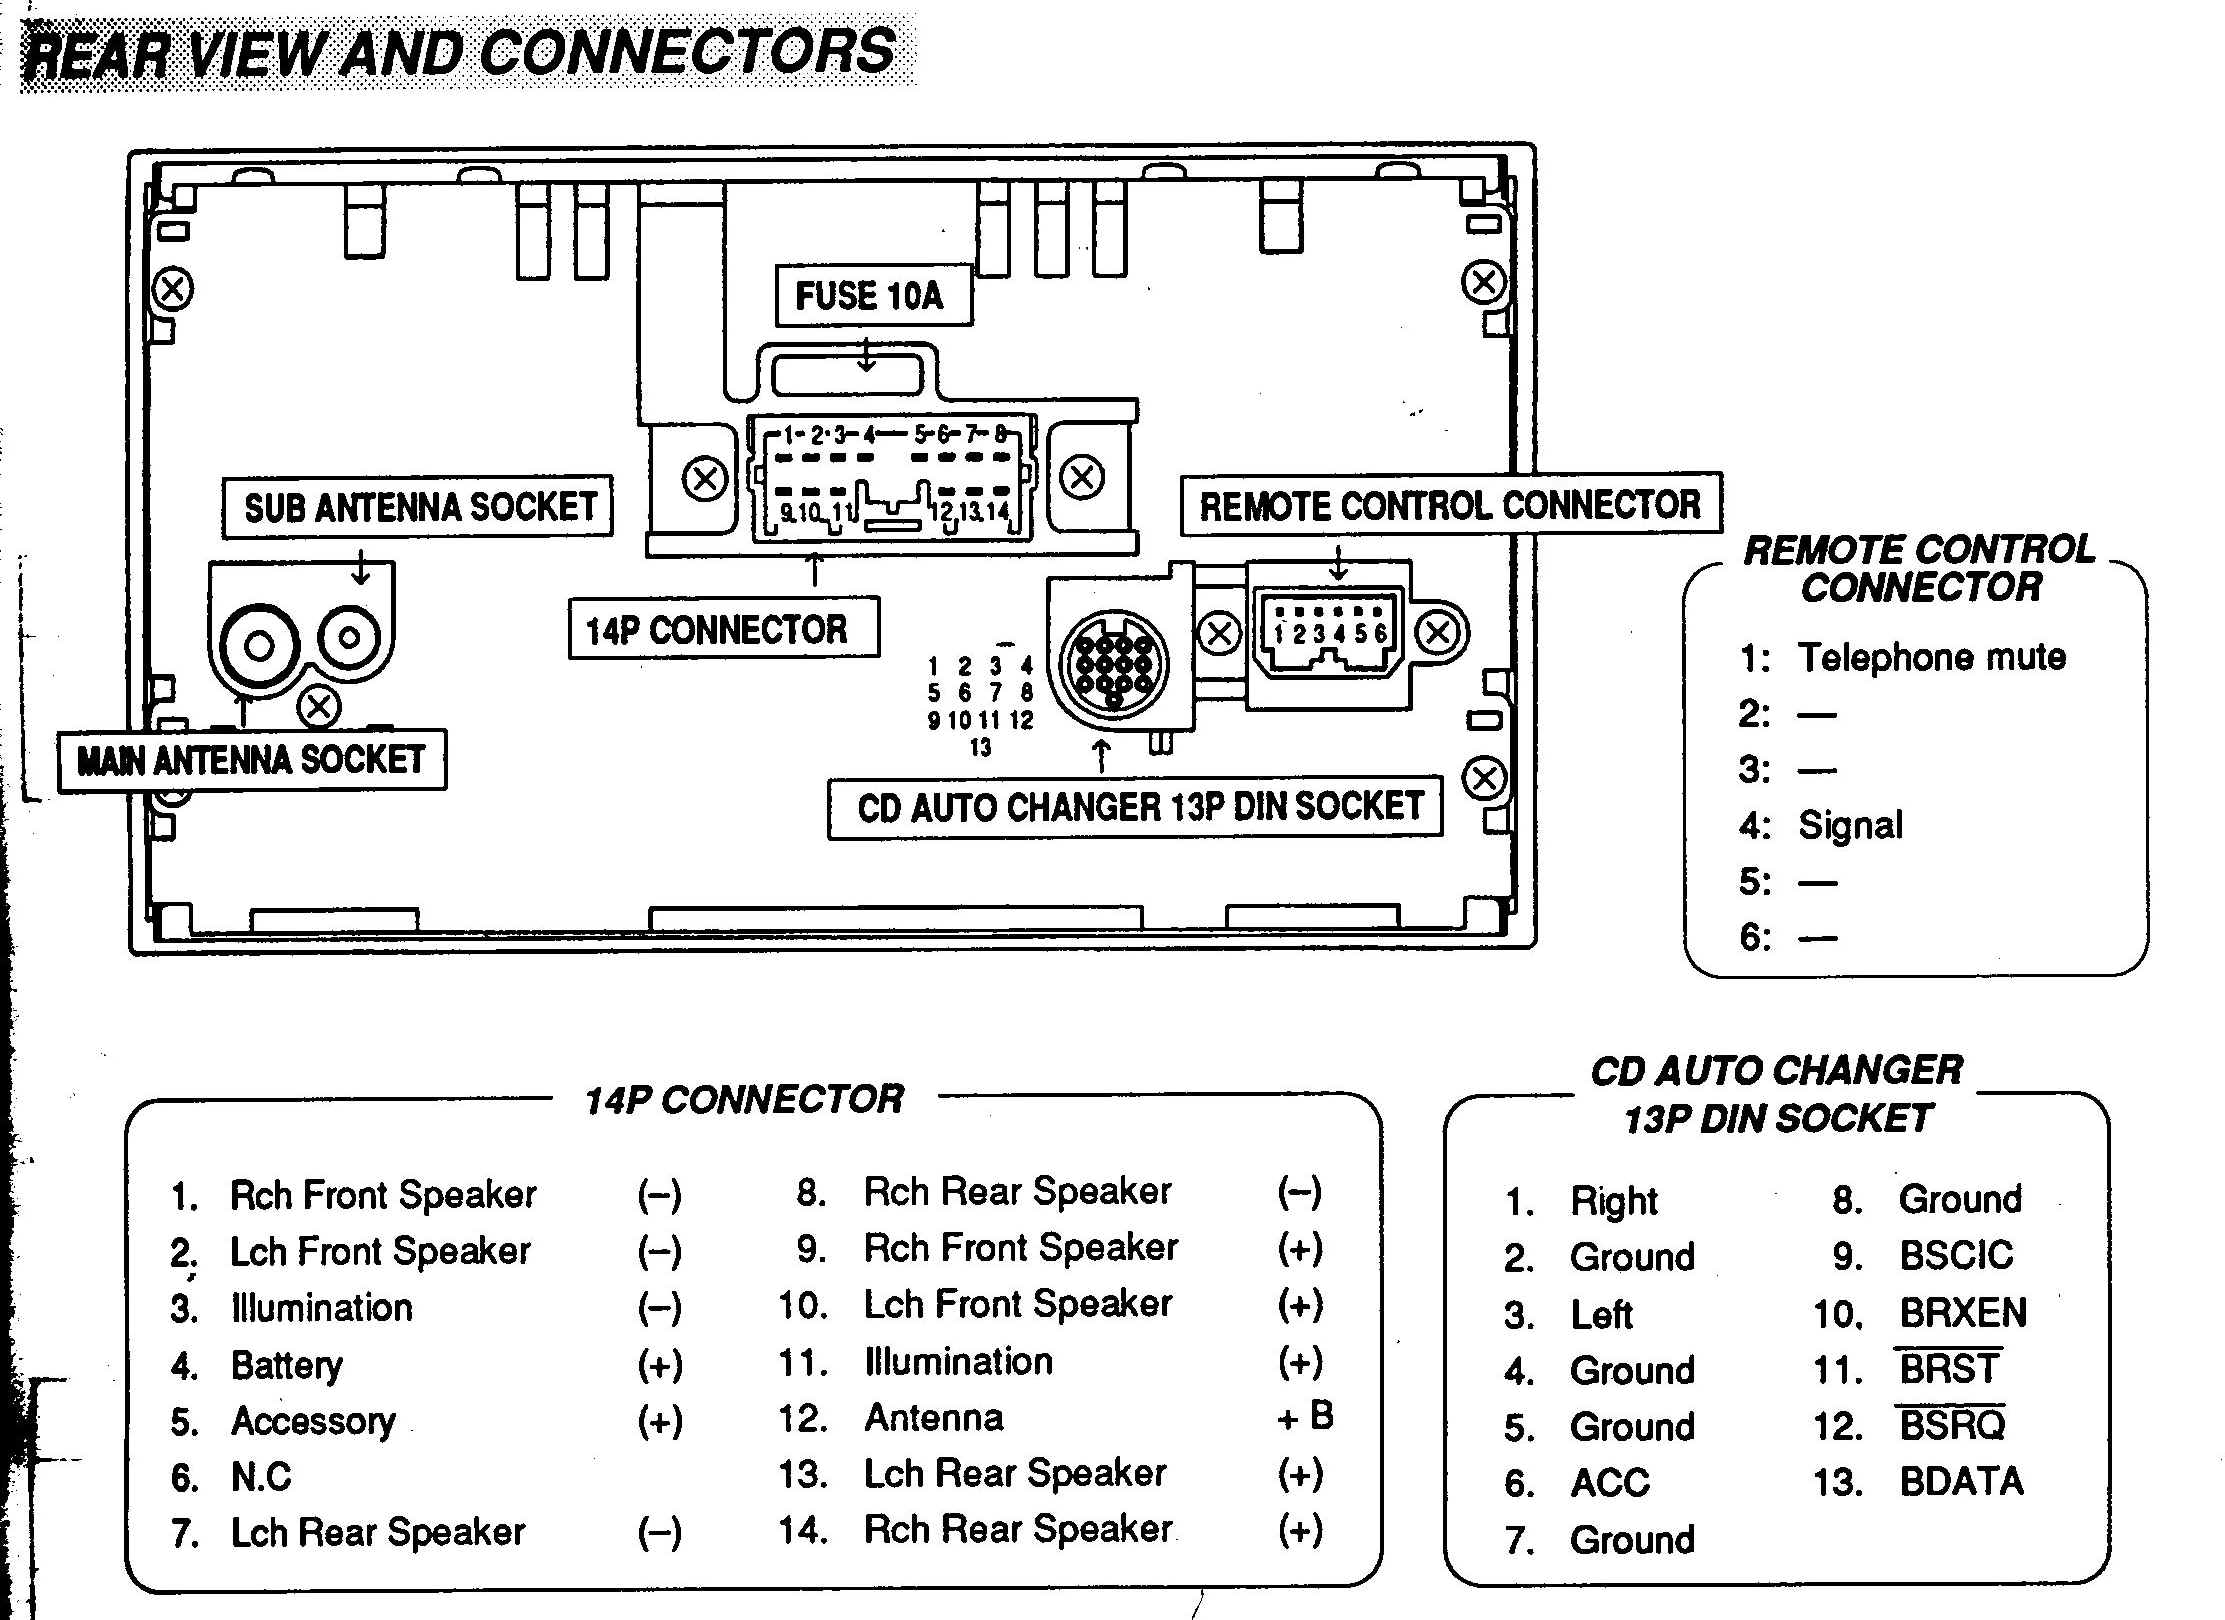 bose wiring diagrams mbkz vinylcountdowndisco uk \u2022